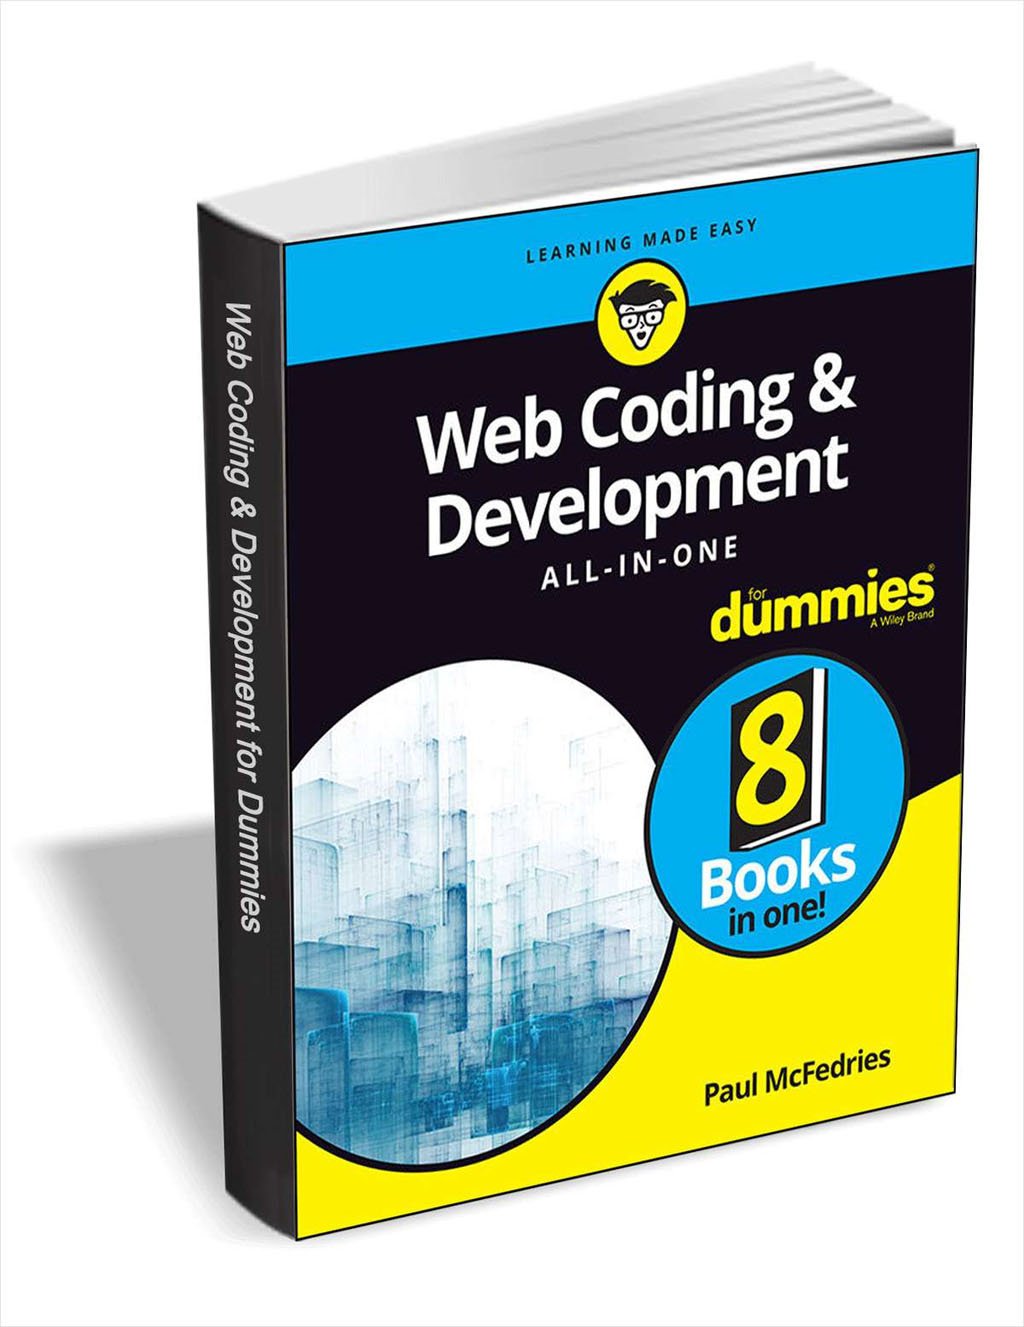 Web Coding & Development All-in-One For Dummies ($25.99 Value) FREE for a Limited Time Screenshot